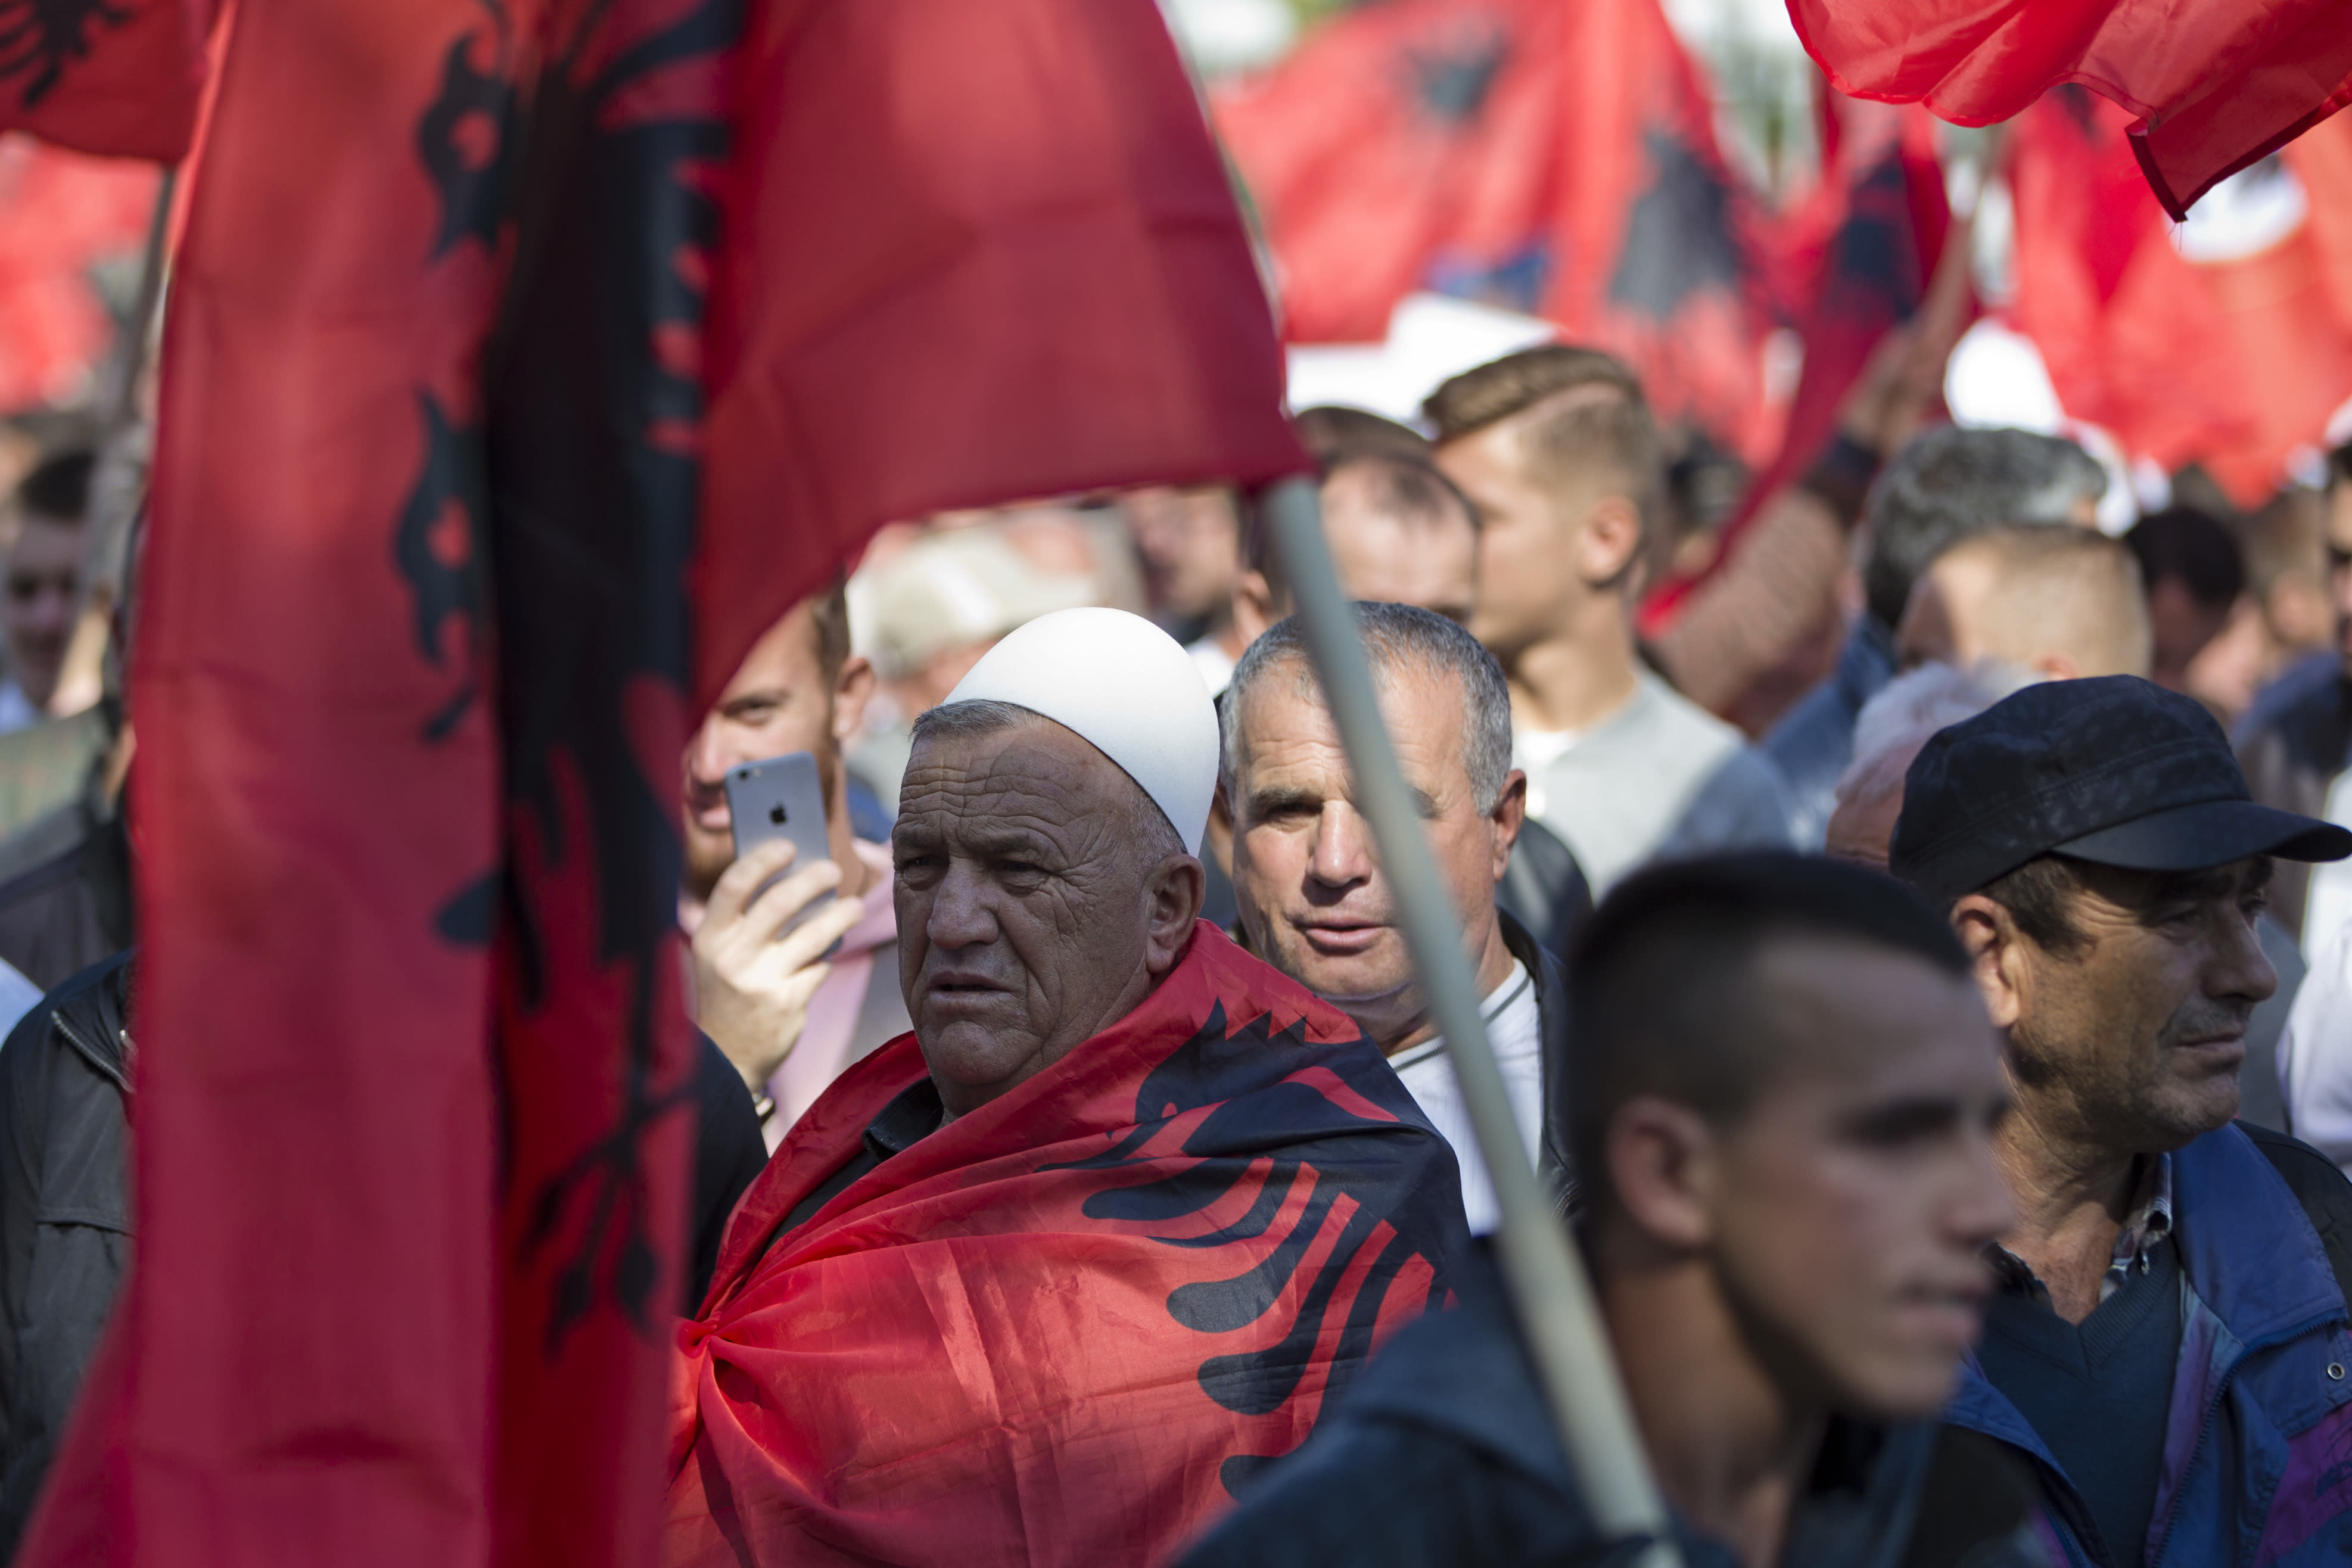 Supporter of Kosovo's opposition Self-Determination party draped with national Albanian flag marches during a protest toward Skanderbeg Square on Saturday, Sept. 29, 2018, in Kosovo capital Pristina. Thousands of people in Kosovo are protesting their president's willingness to include a possible territory swap with Serbia in the ongoing negotiations to normalize relations between the two countries.(AP Photo/Visar Kryeziu)